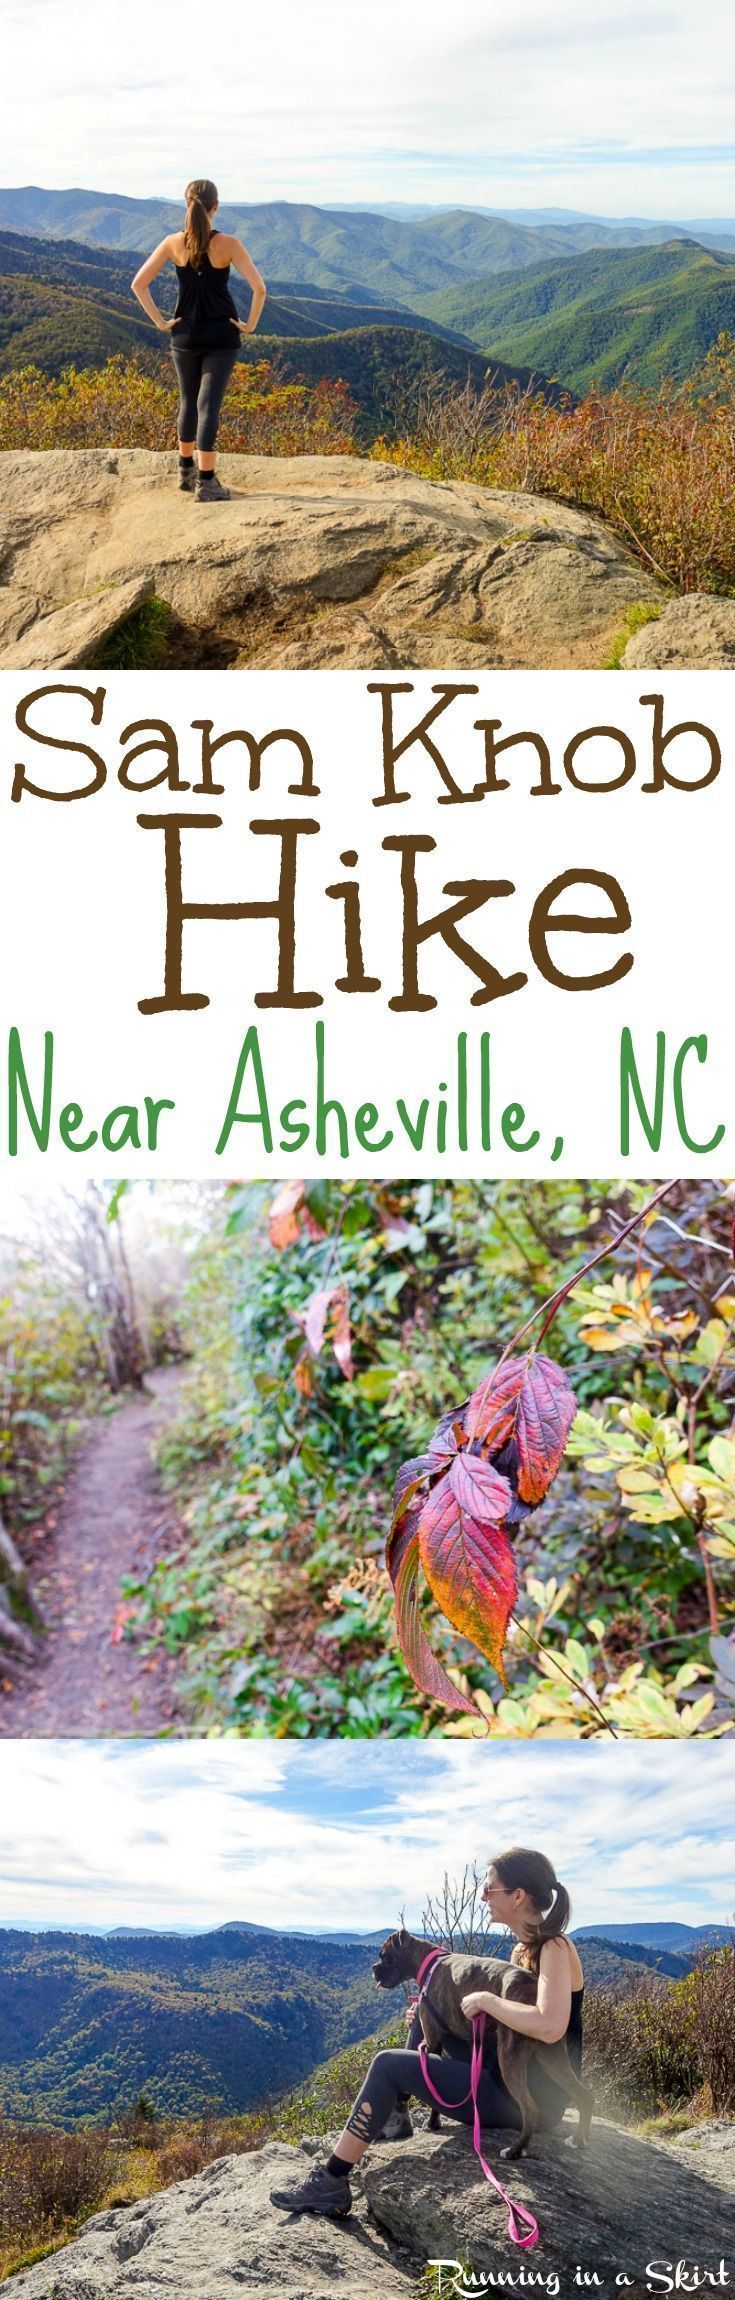 Sam Knob Hike - Details about this gorgeous 2 1/12 mile summit view day hike along the Blue Ridge Parkway near Asheville, North Carolina. Beautiful NC Mountains fall views and one of my favorite Asheville hikes. / Running in a Skirt #fallhiking #fallhikingmountain